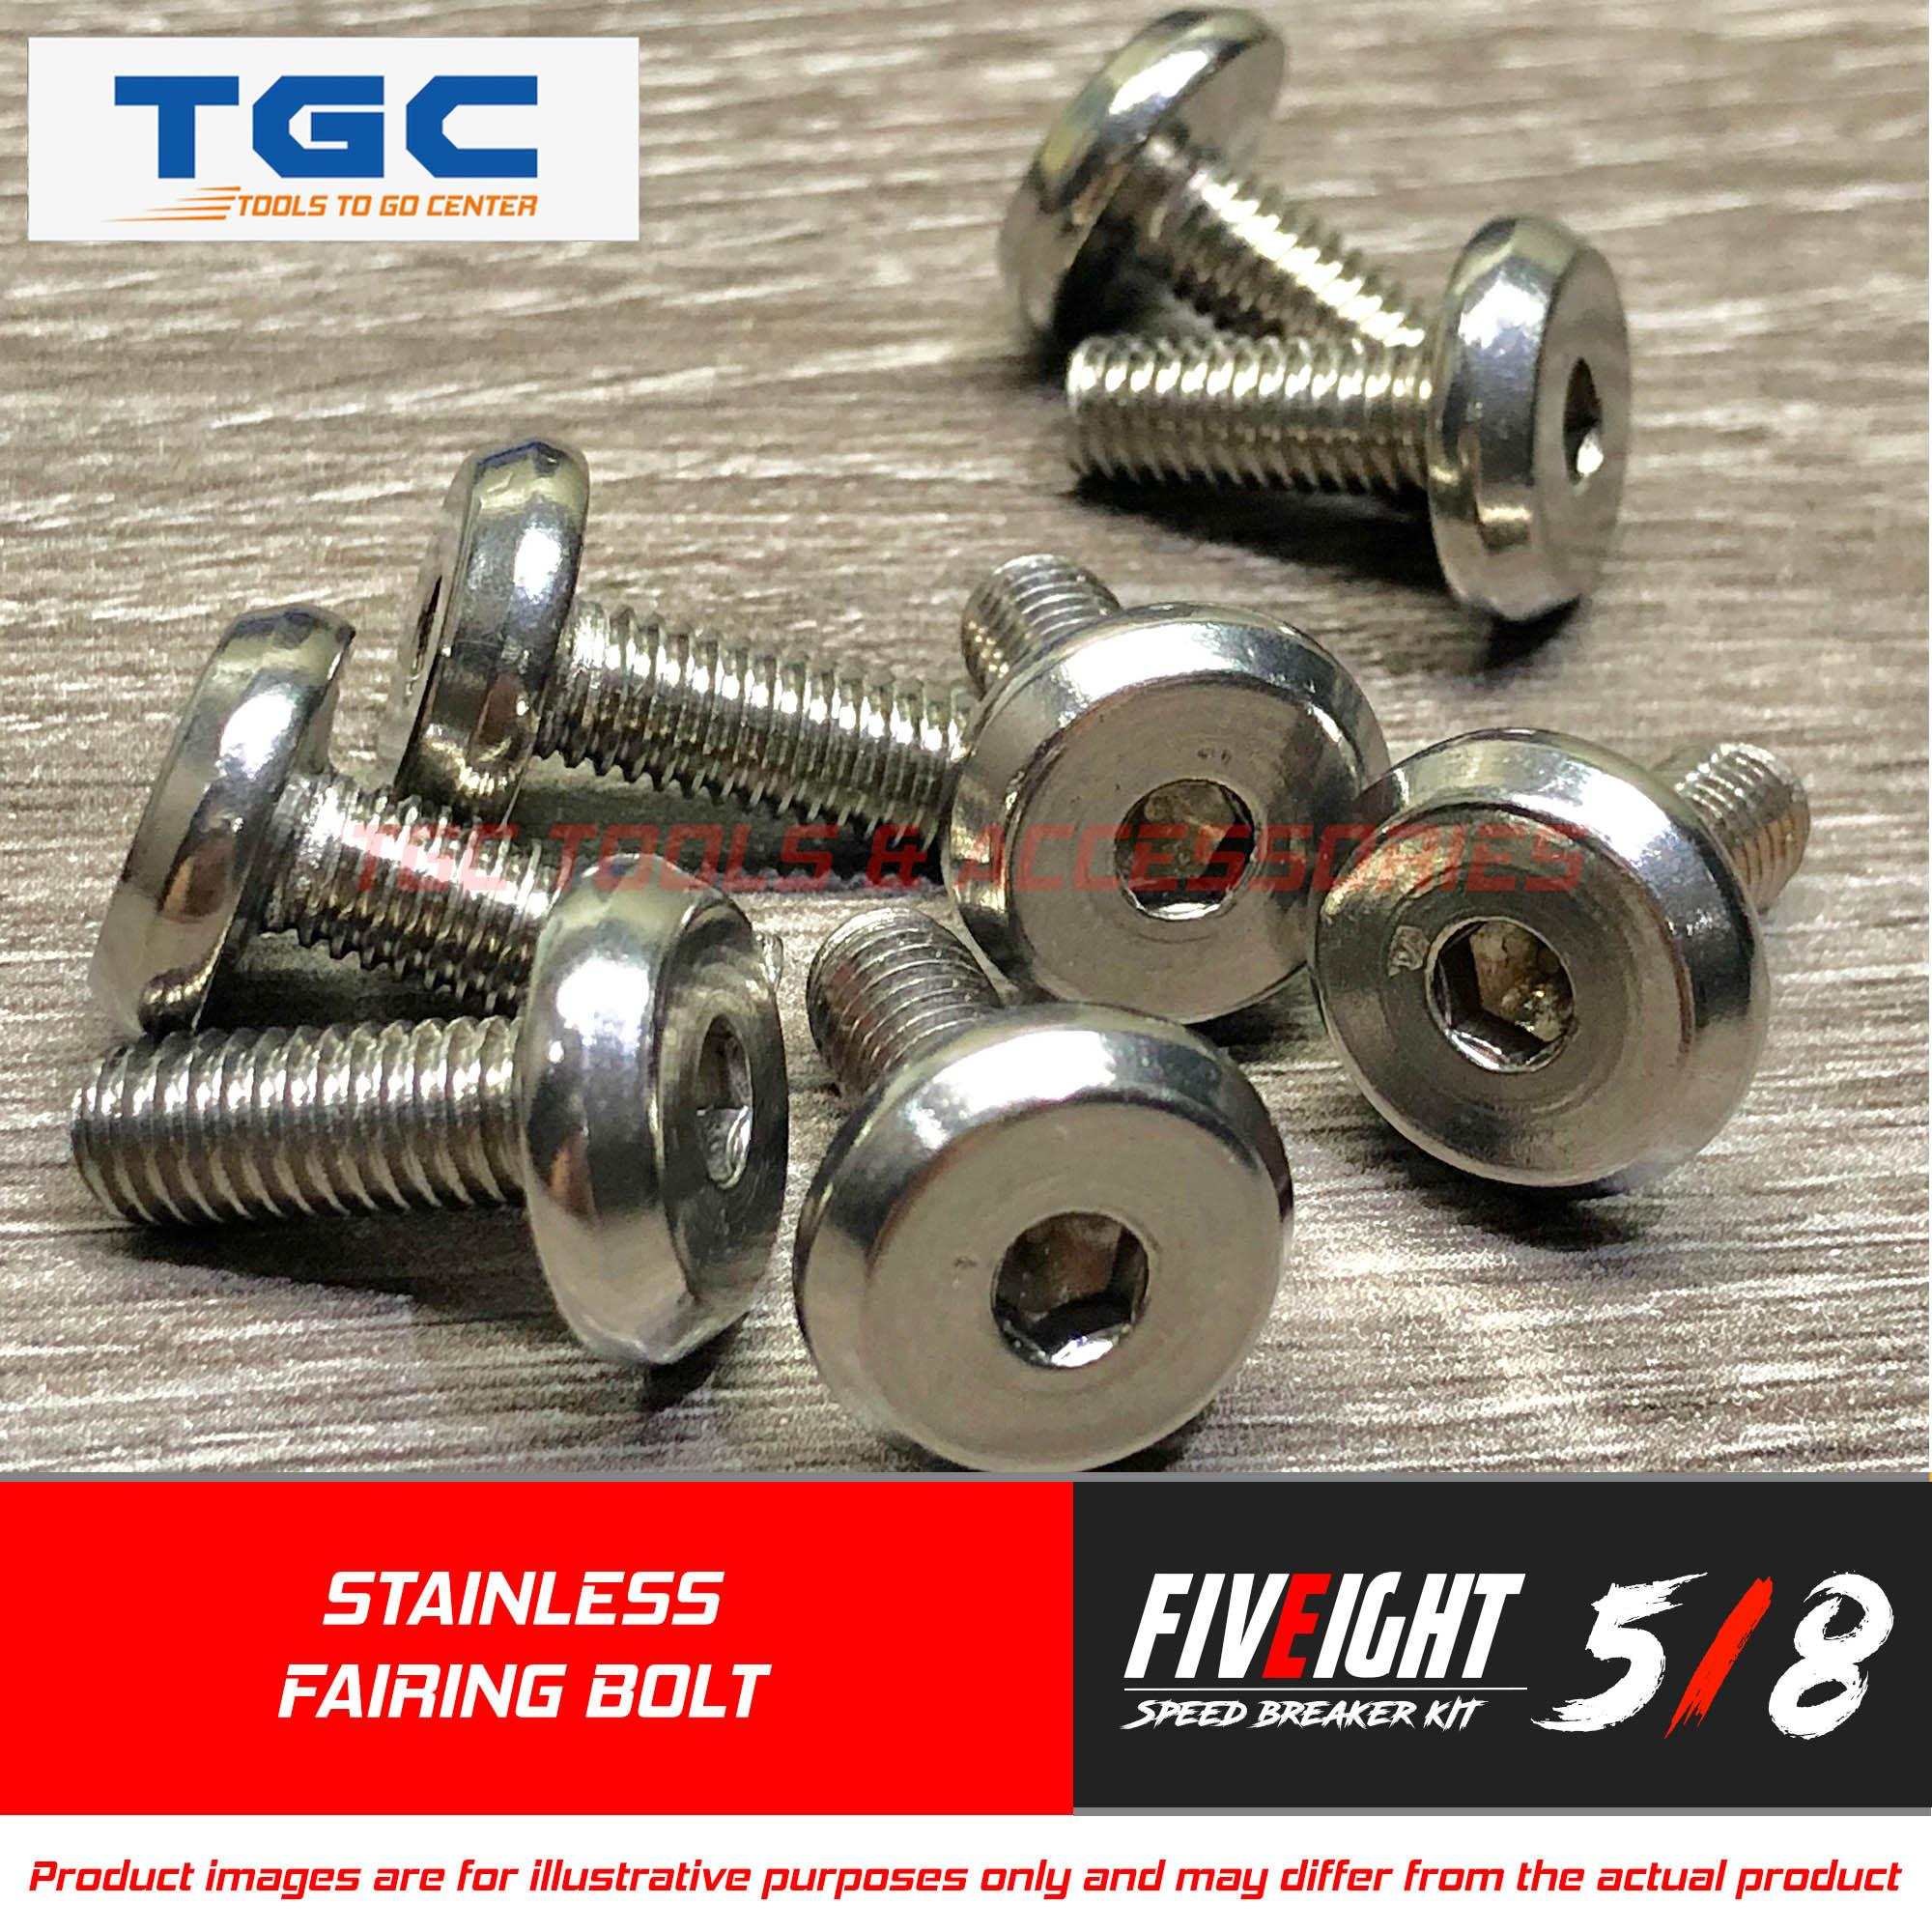 Five Eight Speed 8pcs Motorcycle Fairing Body Bolt ( M 6 X 16 Mm ) And 1 Pc Allen Key Disc Bolt Stainless Wafer Style Head Screw For Footboard And Flaring Bolt Fairing Bolt Tgc By Tgc Tools & Accessories.